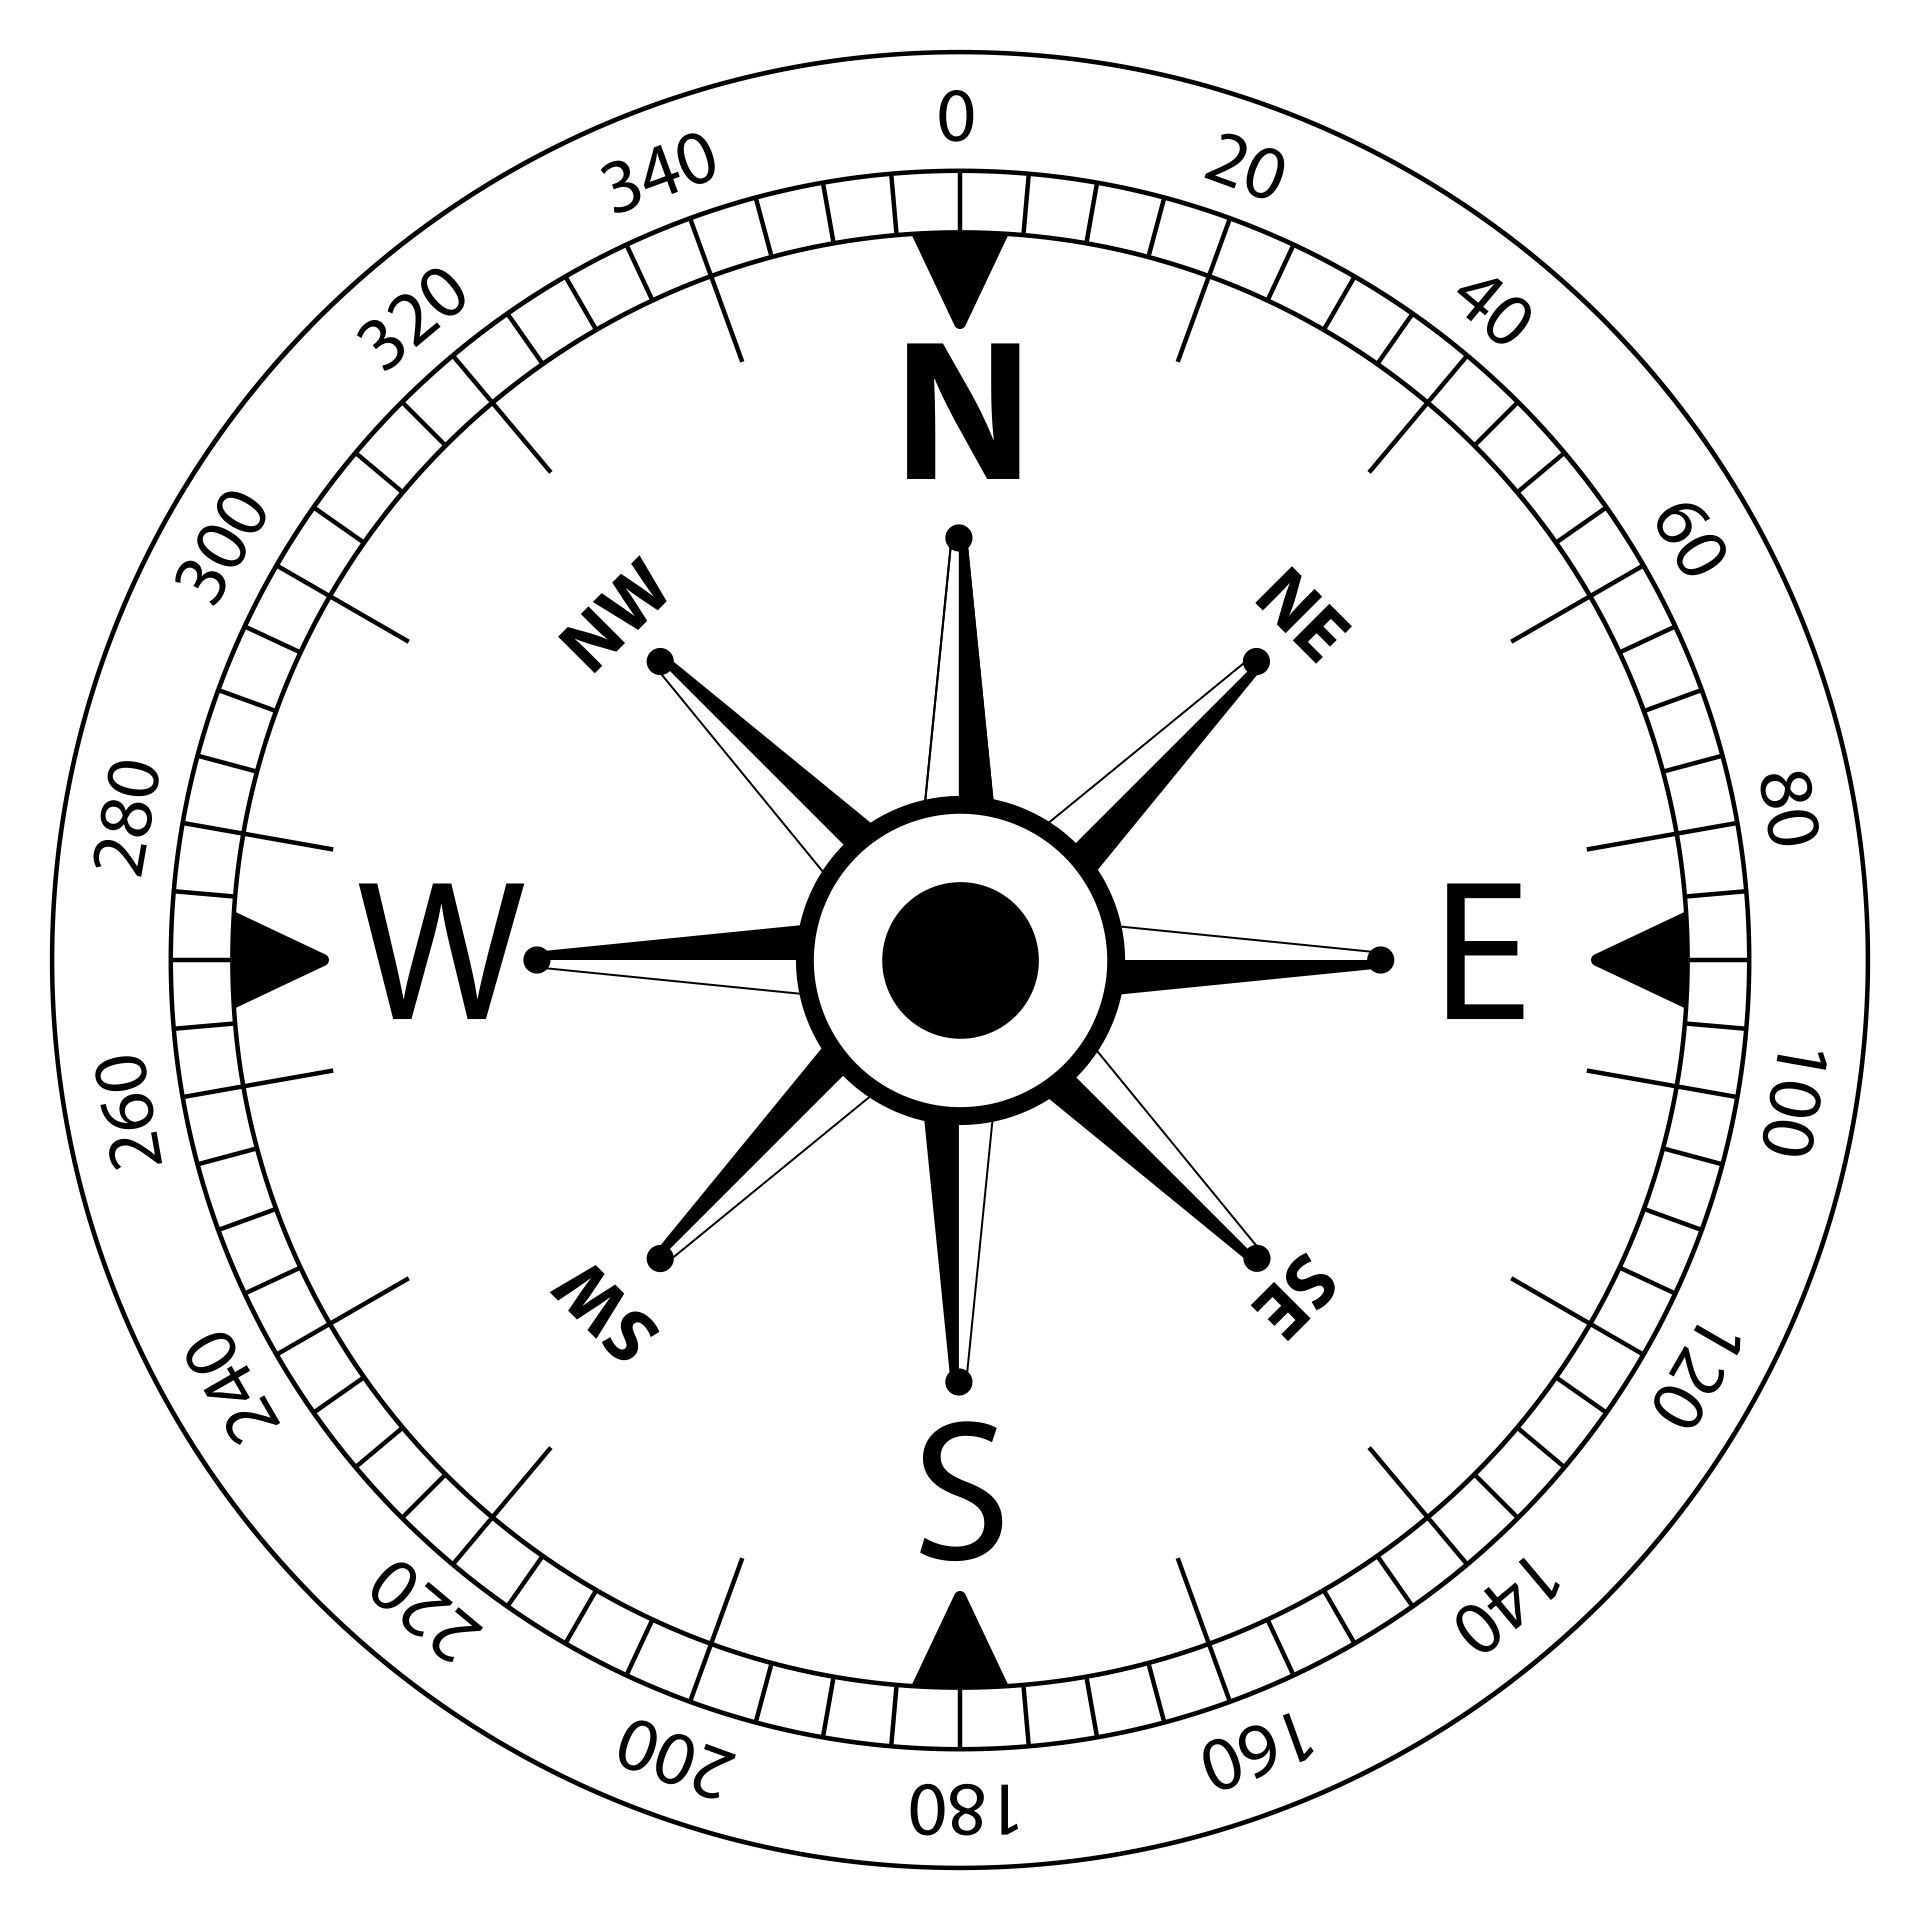 Printable Compass With Degrees